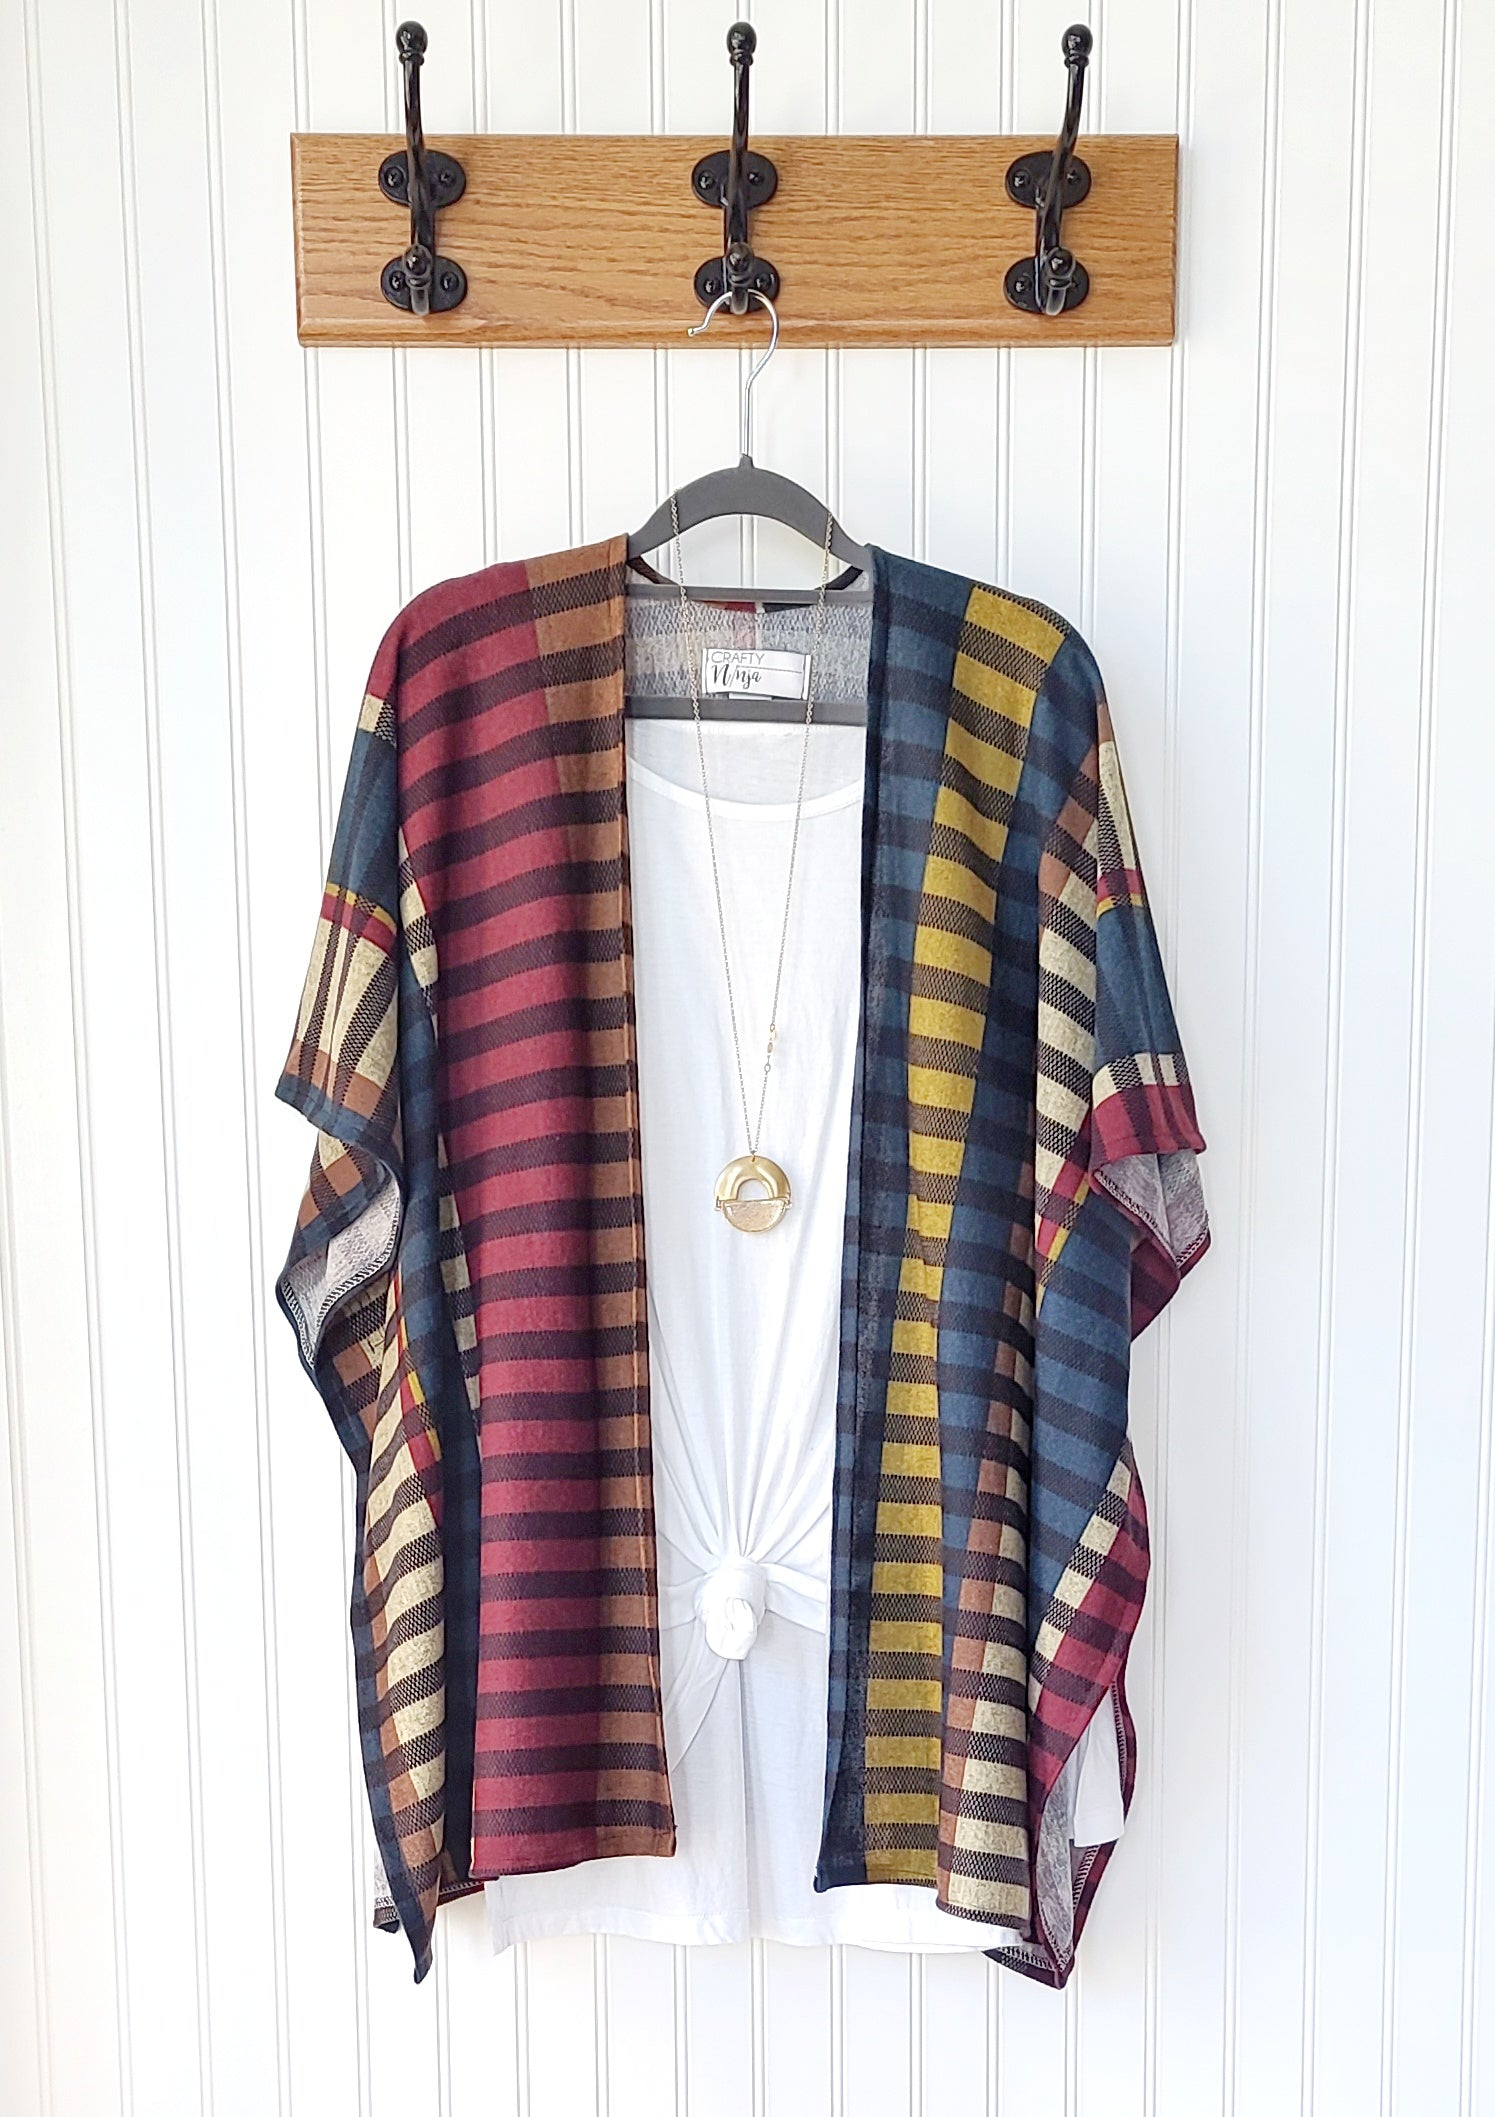 Riley-Fall Striped Sweater Weight Kimono Wrap